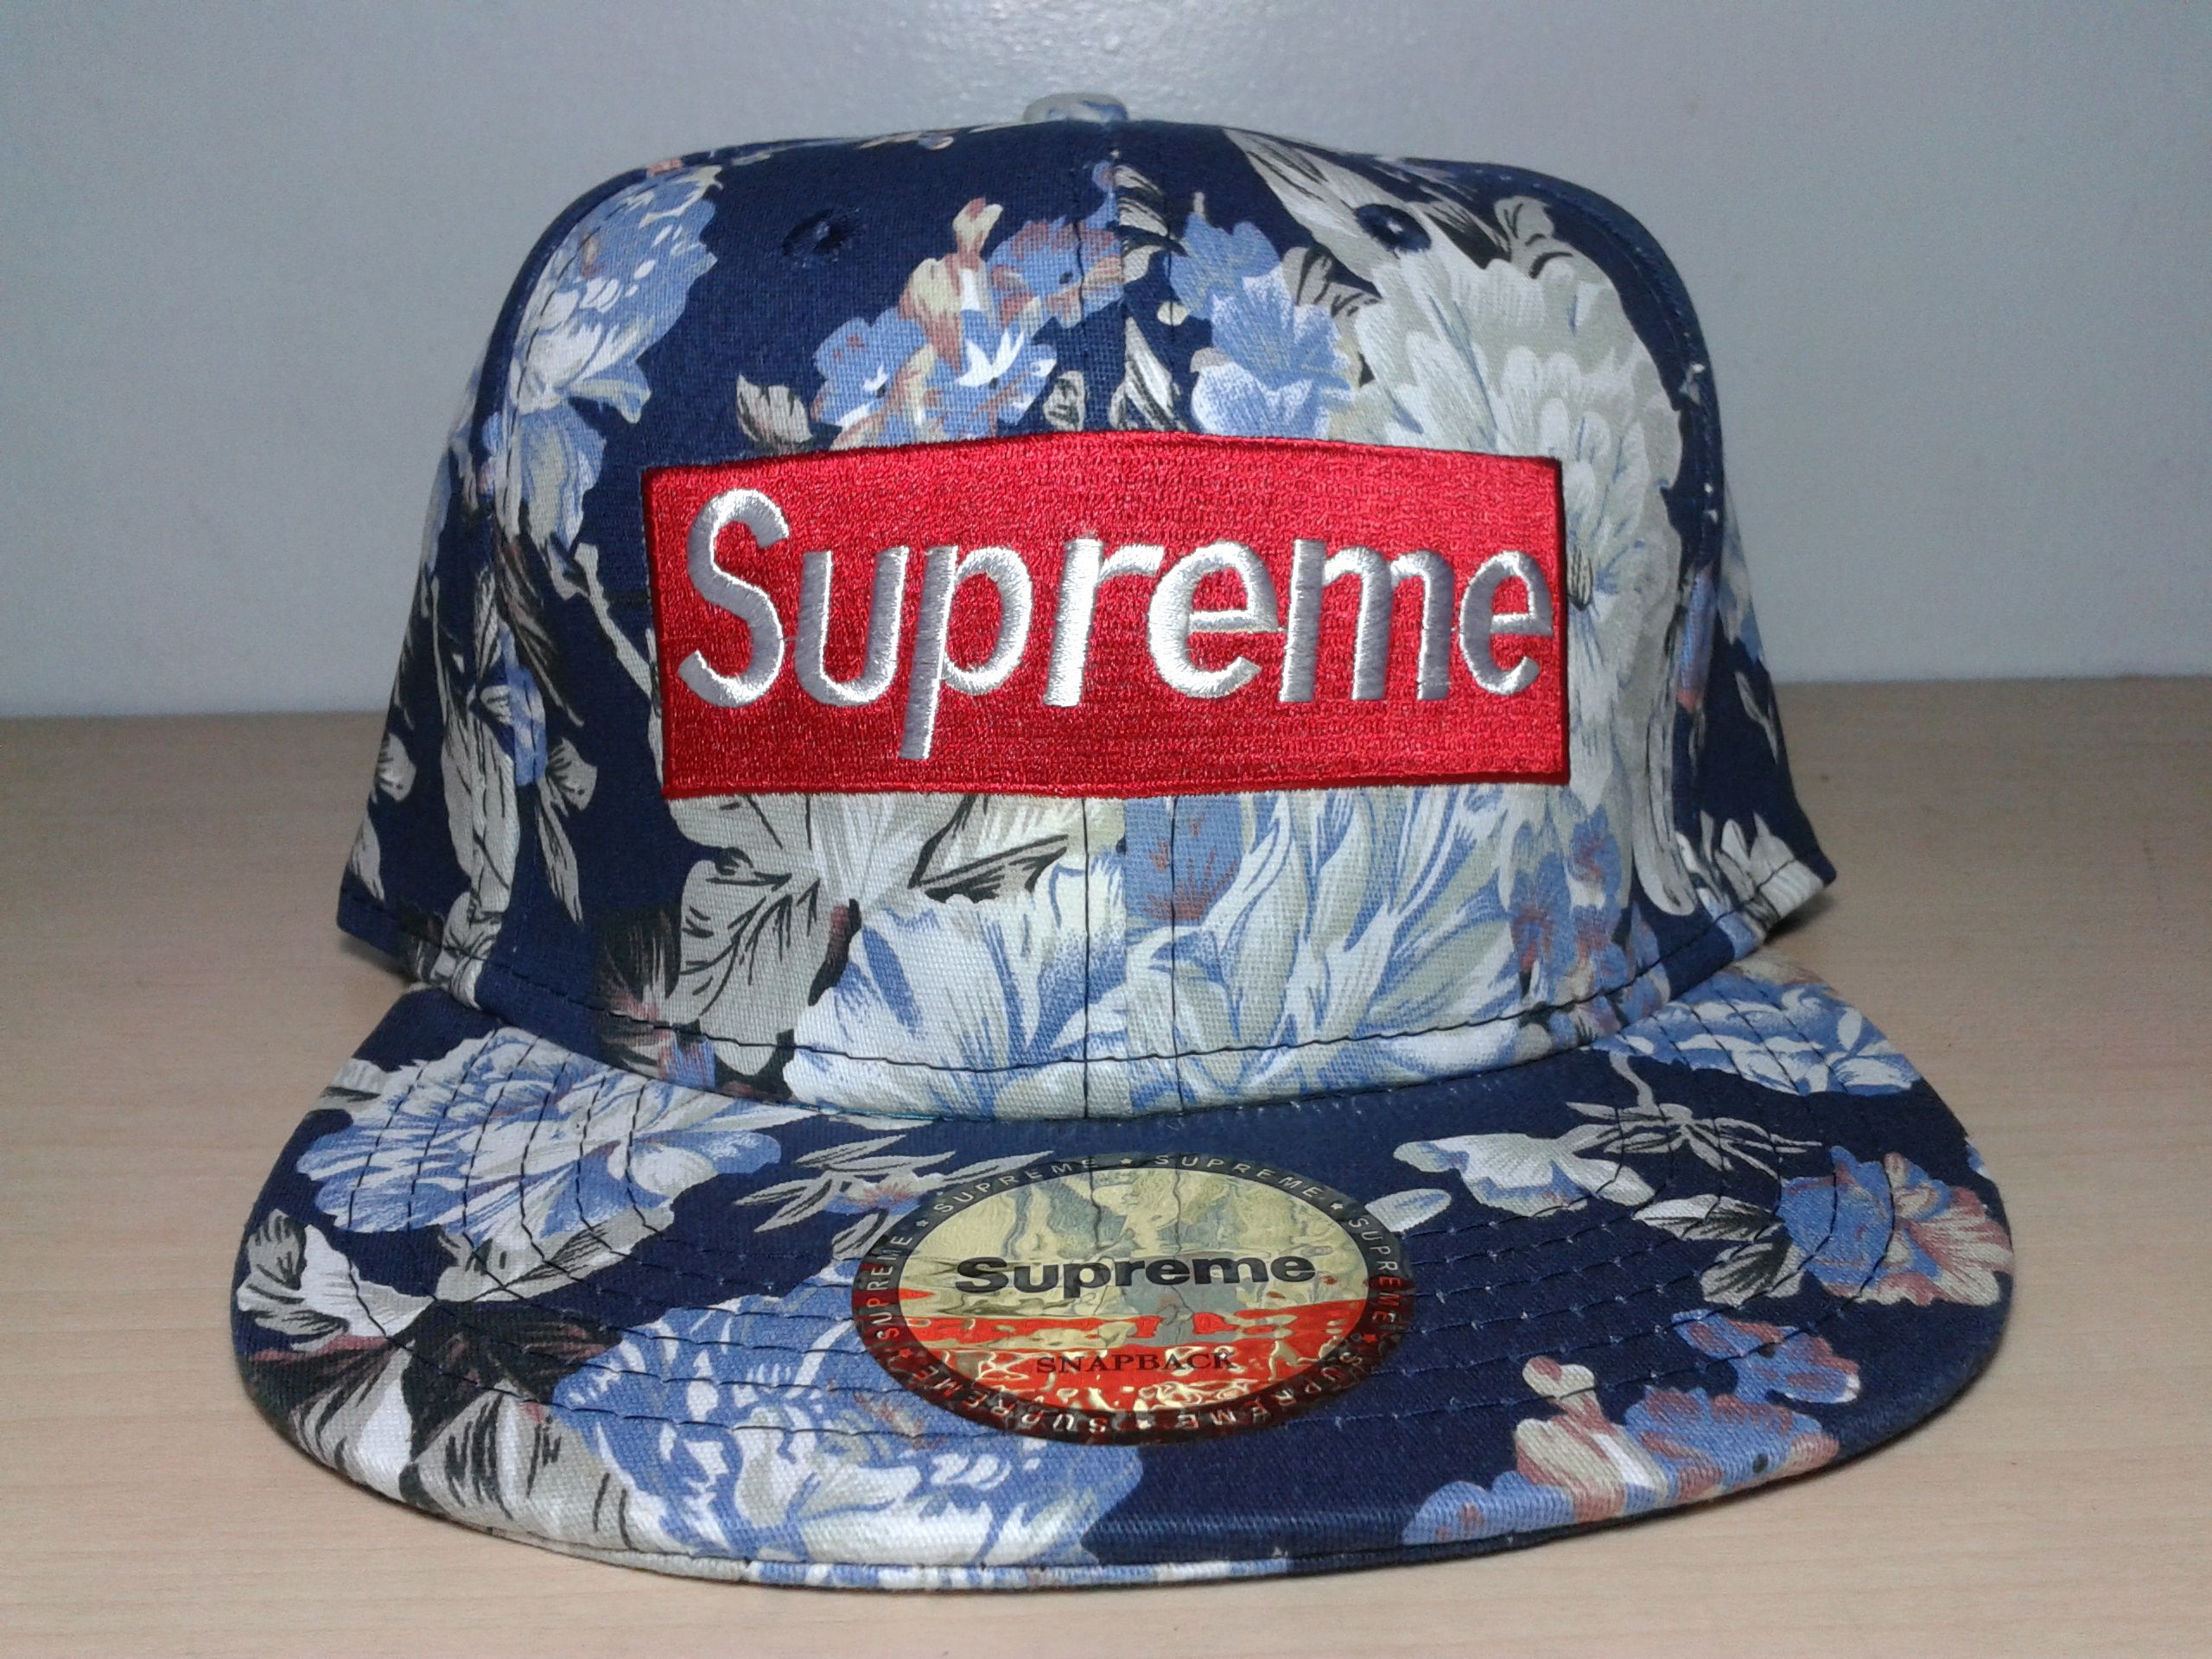 50e3aae6a3a Name  Supreme (Snap Back) Price  450php  themeetupshop  localbrands   philippines